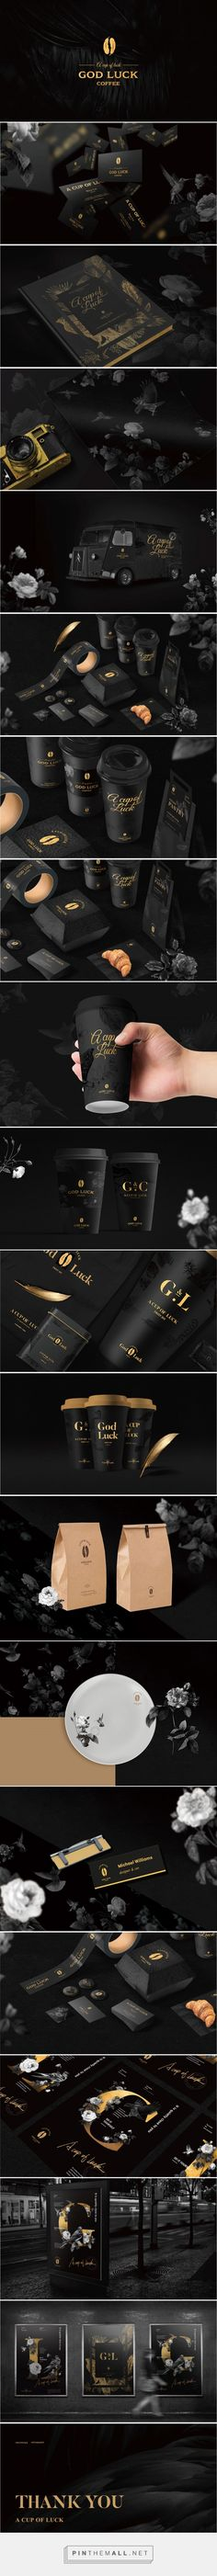 A Cup of Luck Coffee Branding and Packaging by Jem Wong   Fivestar Branding Agency – Design and Branding Agency & Curated Inspiration Gallery